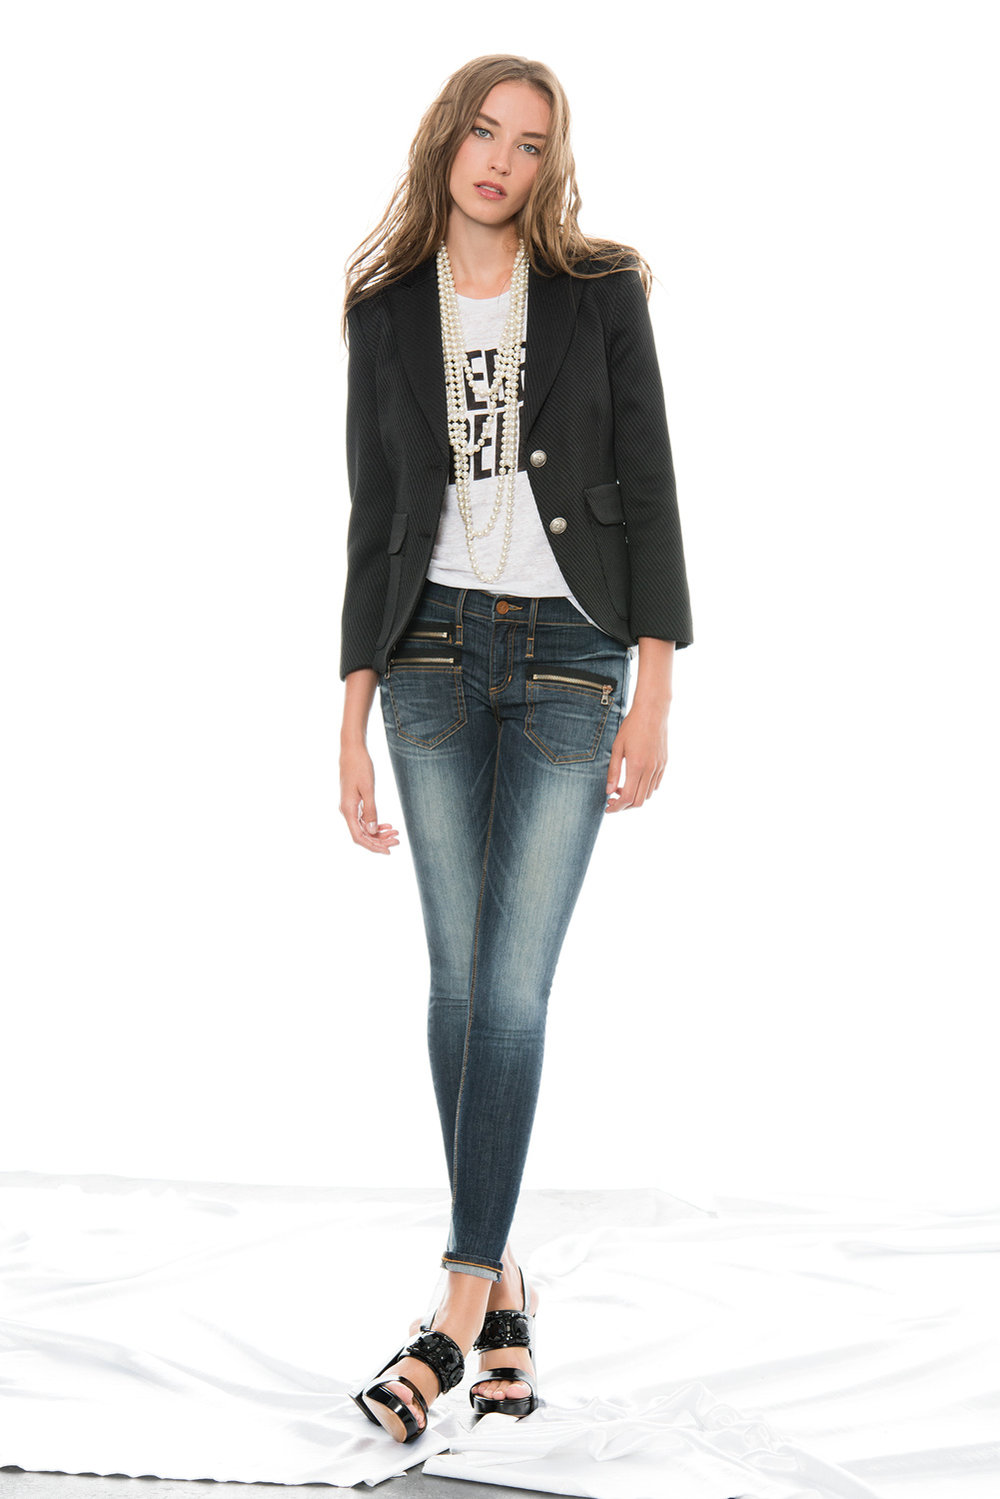 REBEL BELLE  ZIP IT GOOD JEAN AND BLAZER .jpg